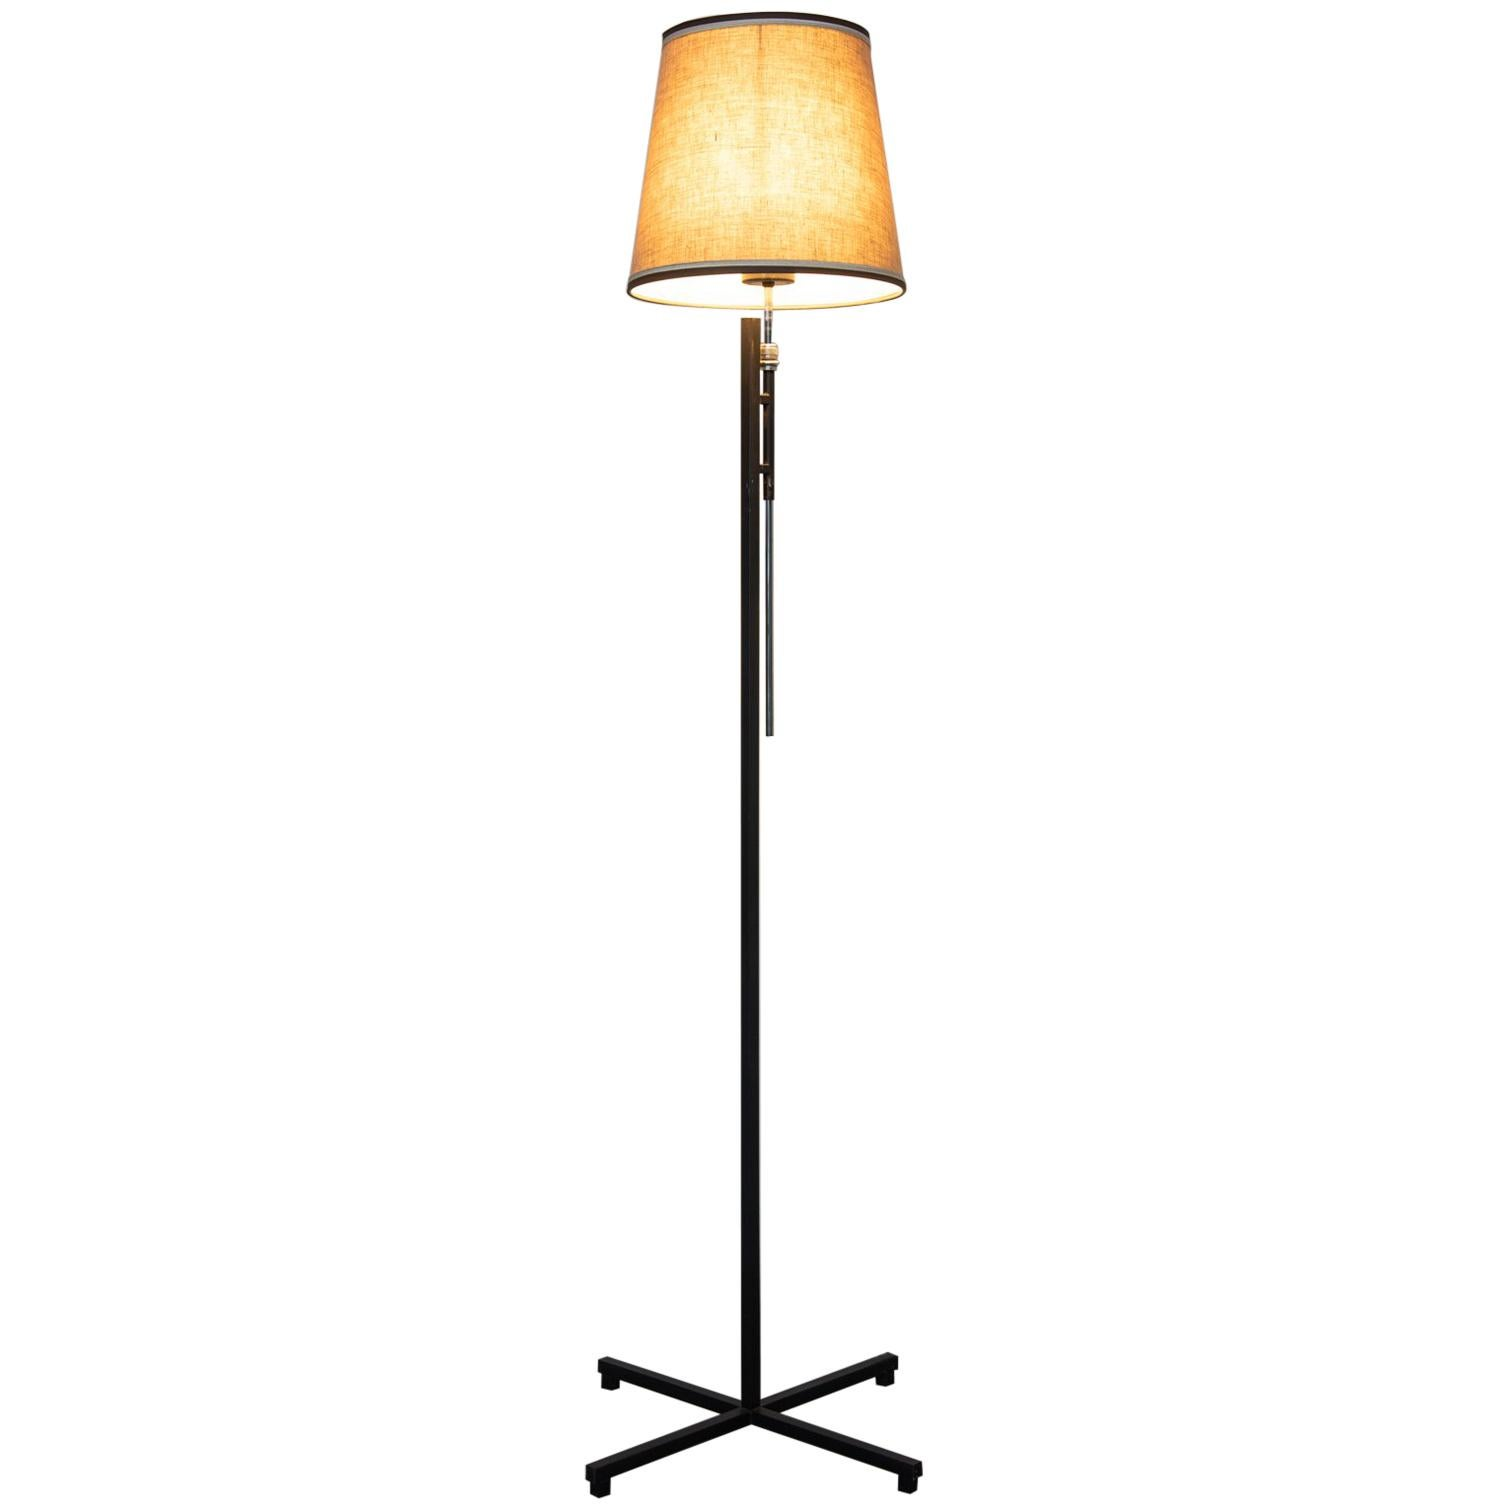 French Metal Floor Lamp, Adjustable Shade by Roger Fatus for Disderot, 1960s